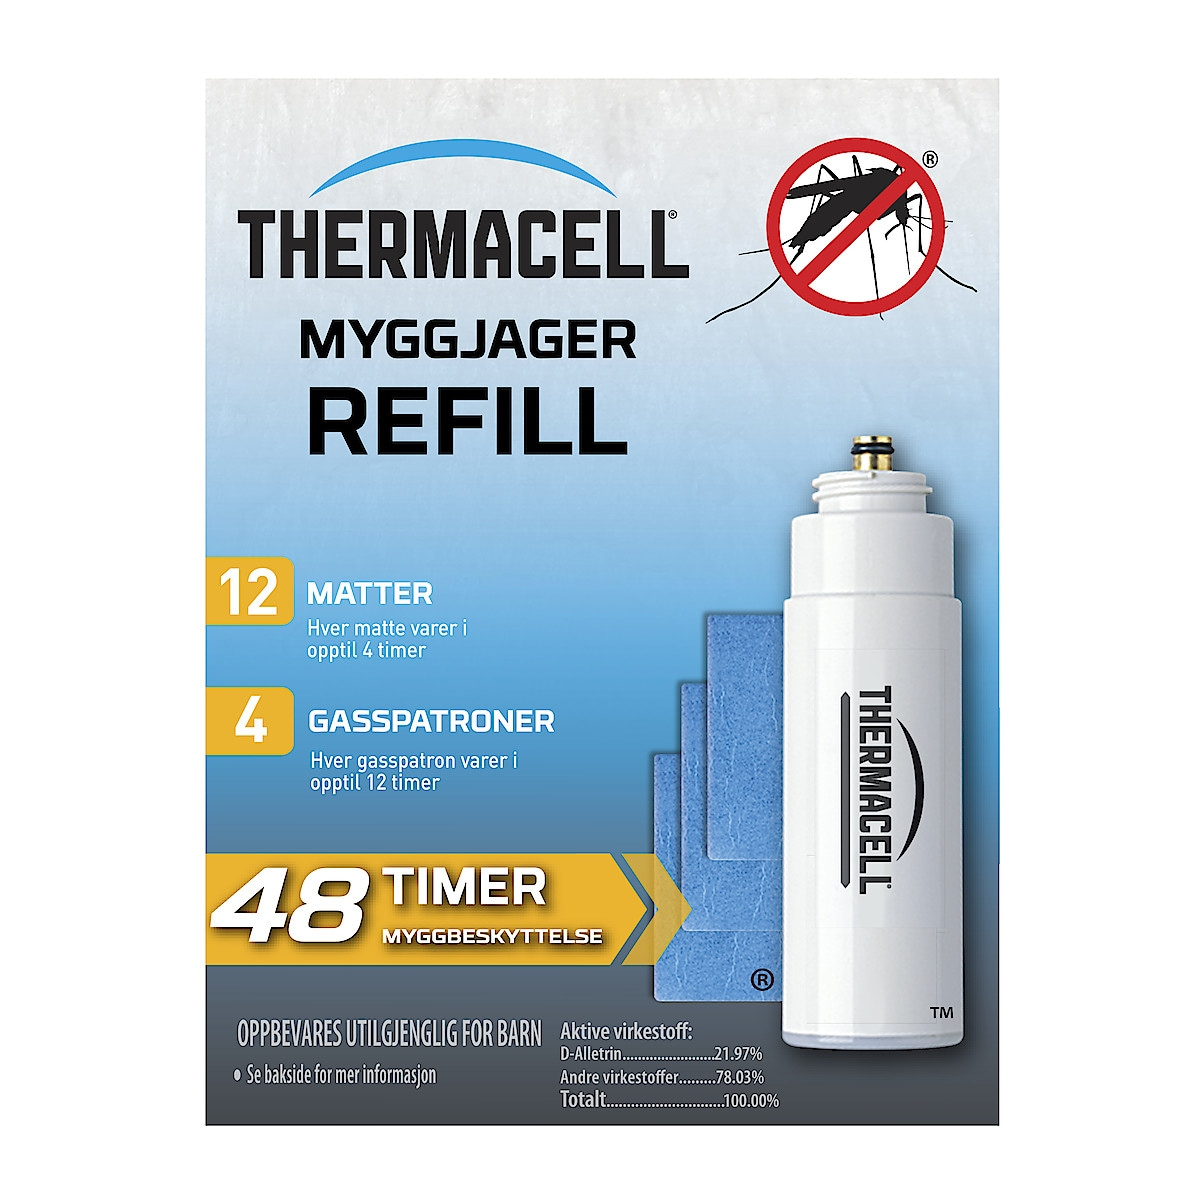 Refill til Thermacell myggjager, 4-pack